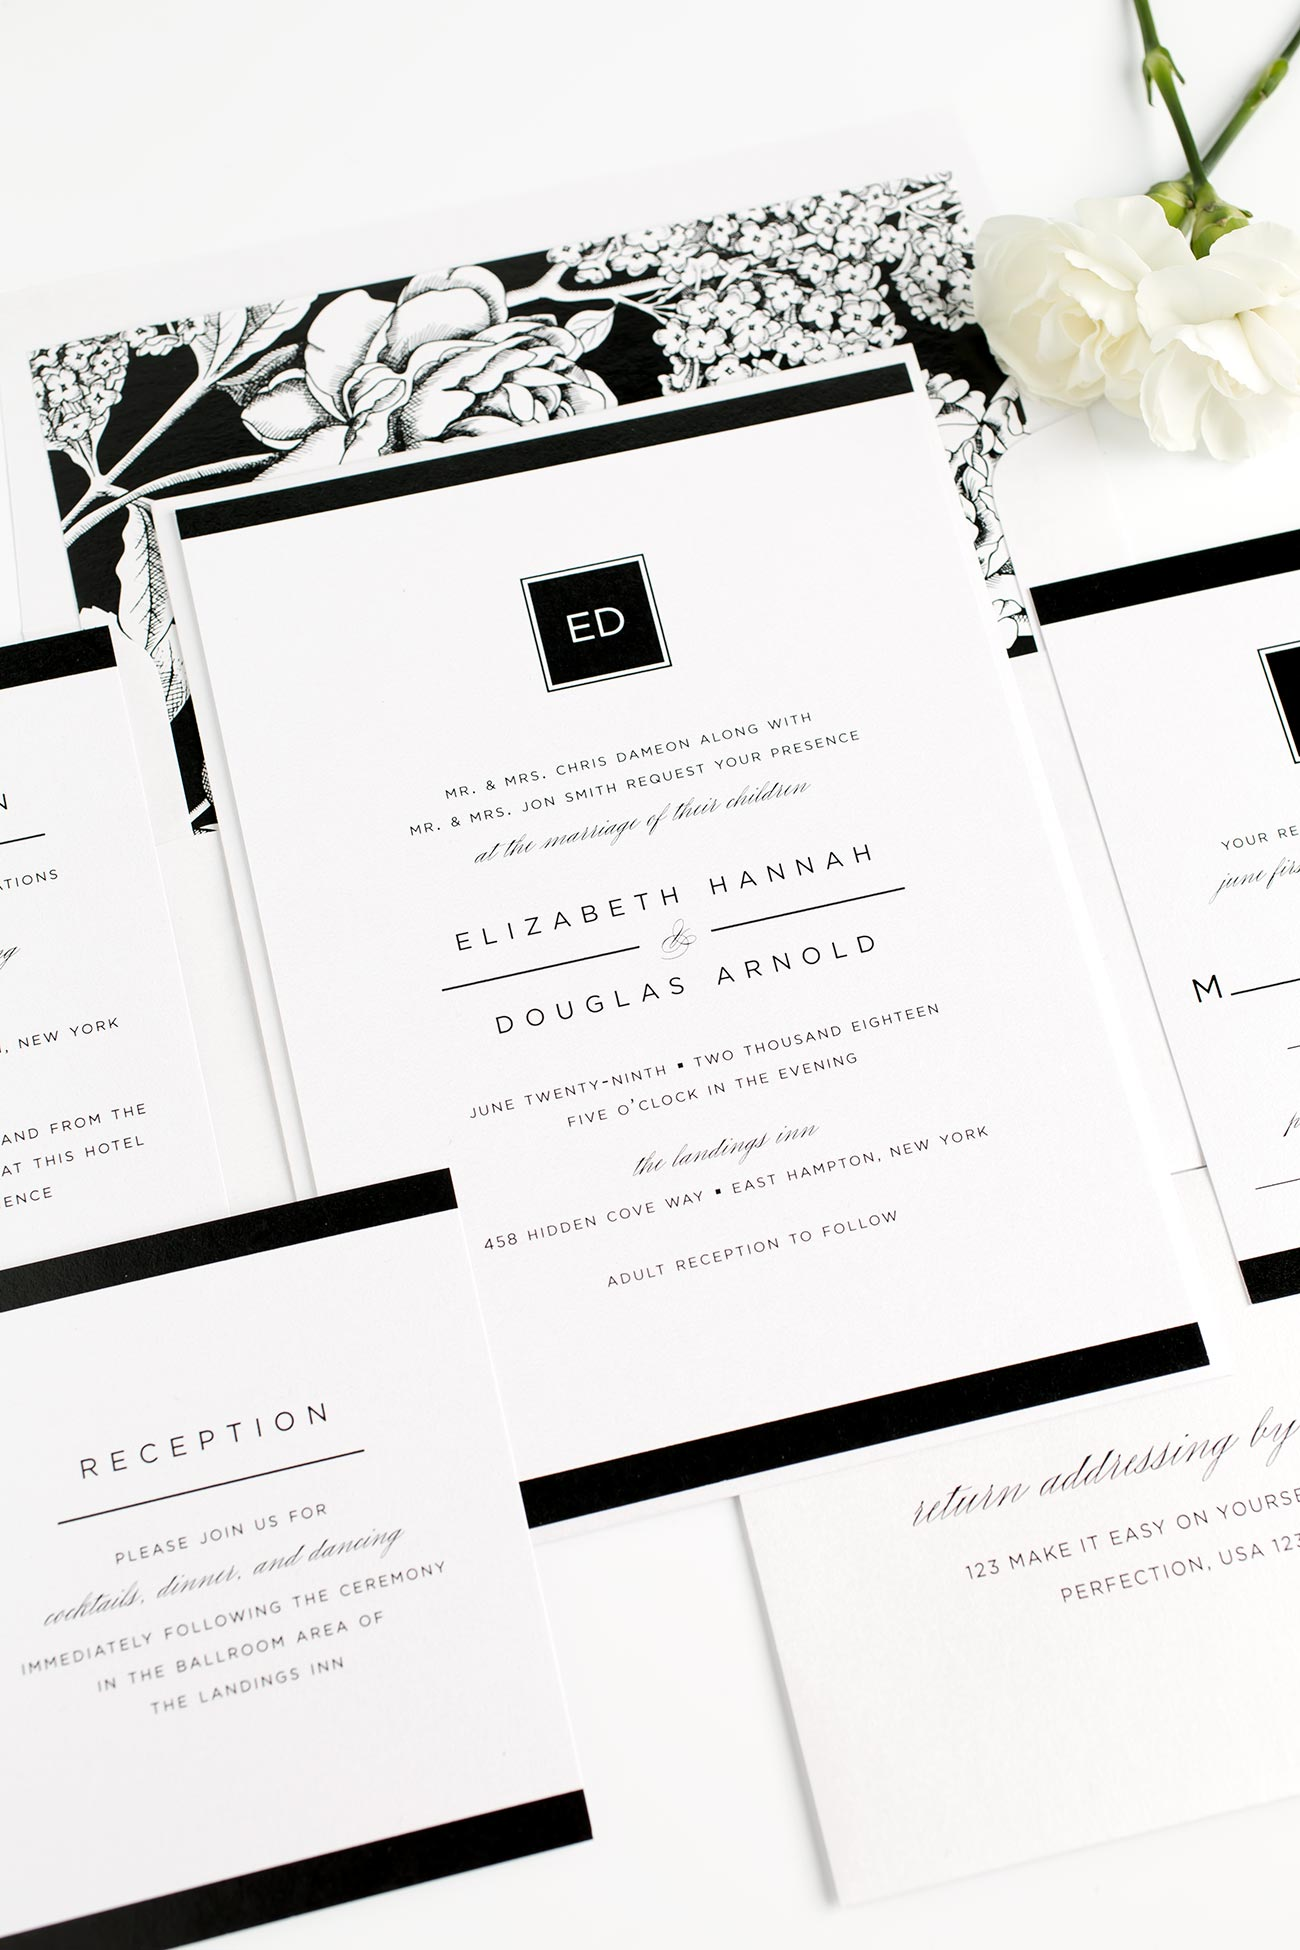 Floral Wedding Invitation in Black and White with a Modern Monogram